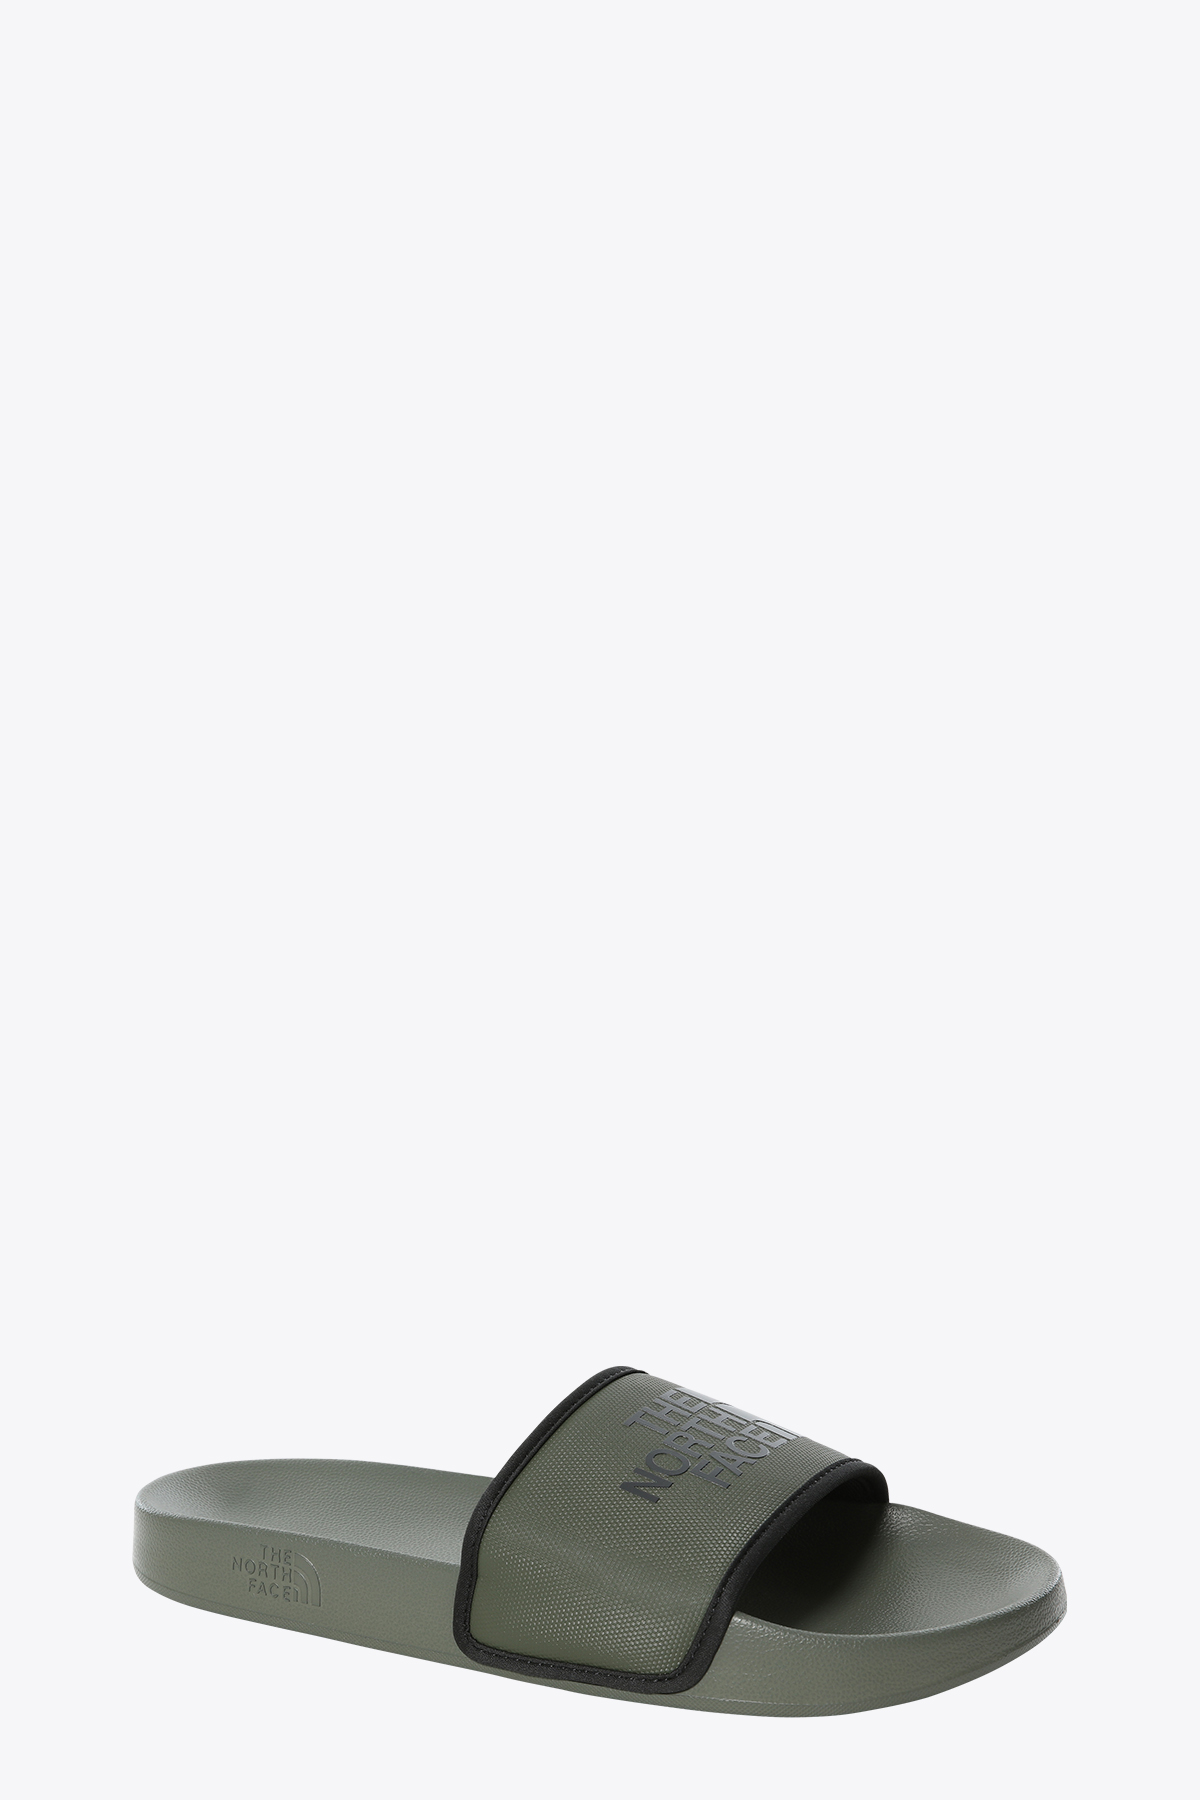 base camp slide THE NORTH FACE | 5032257 | NF0A4T2RBQW1GREEN/BLACK